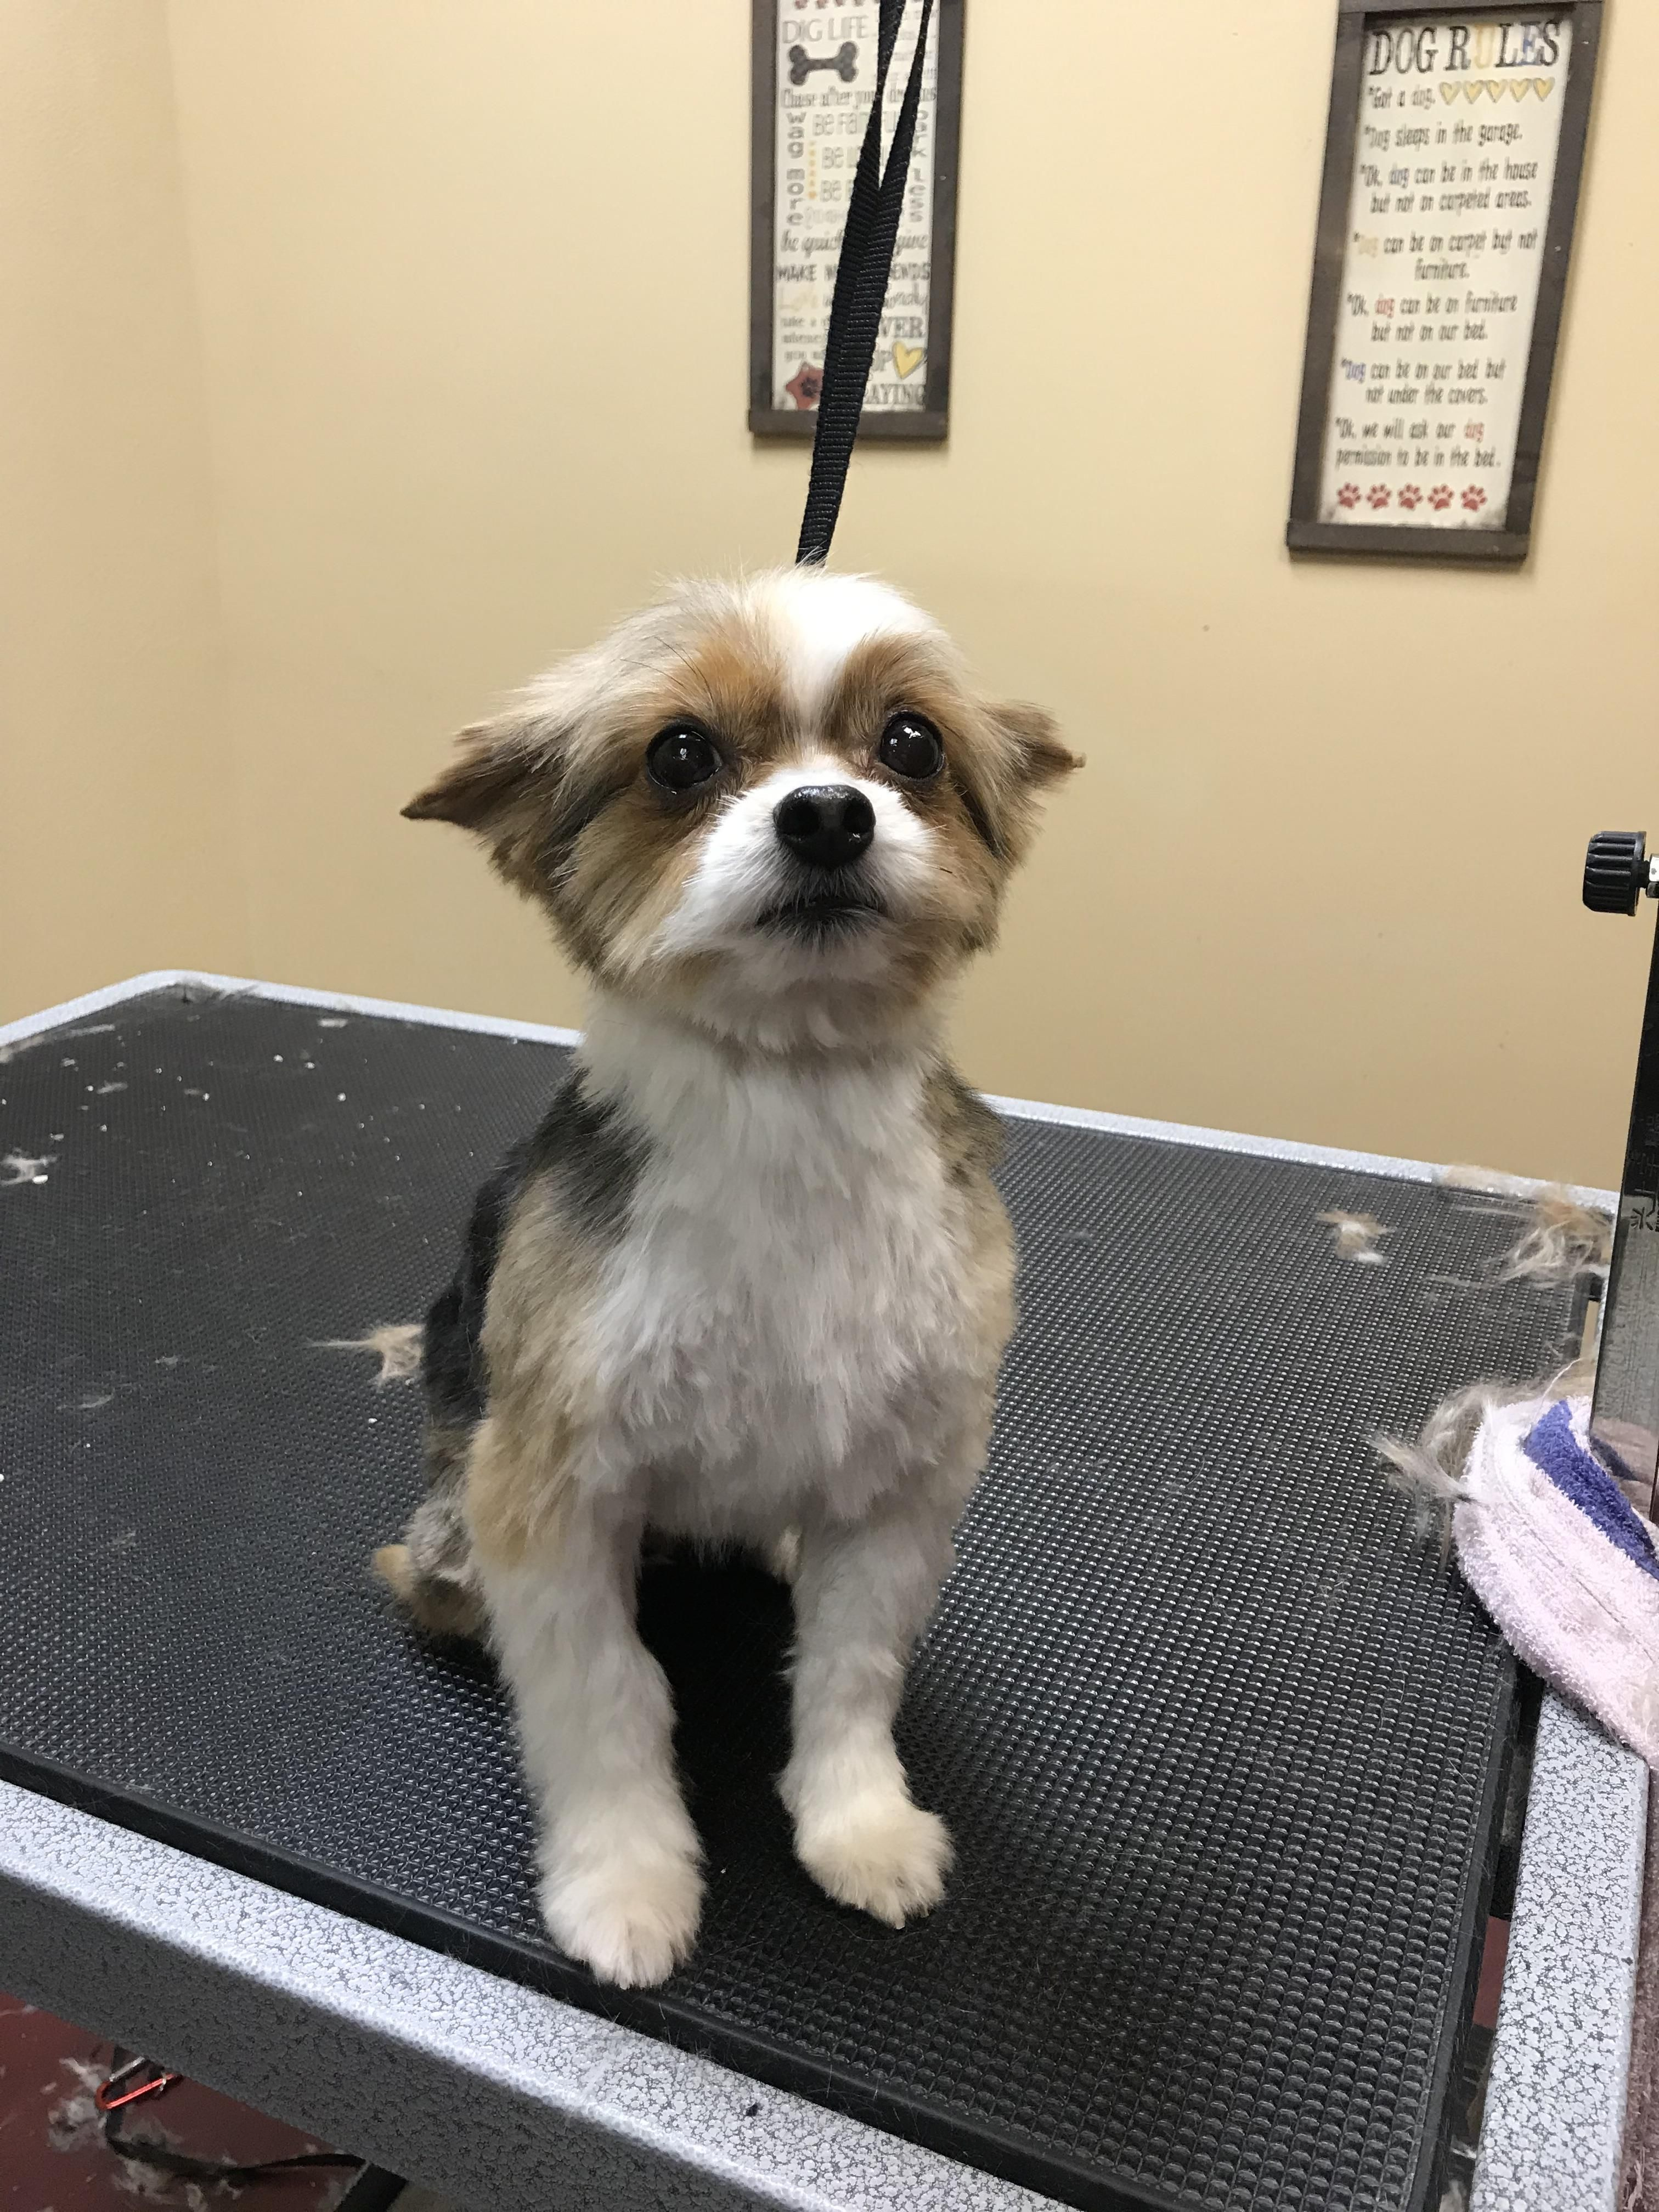 This Little Baby Was So Cute And Well Behaved In 2020 Pets Pet Grooming Healthy Pets